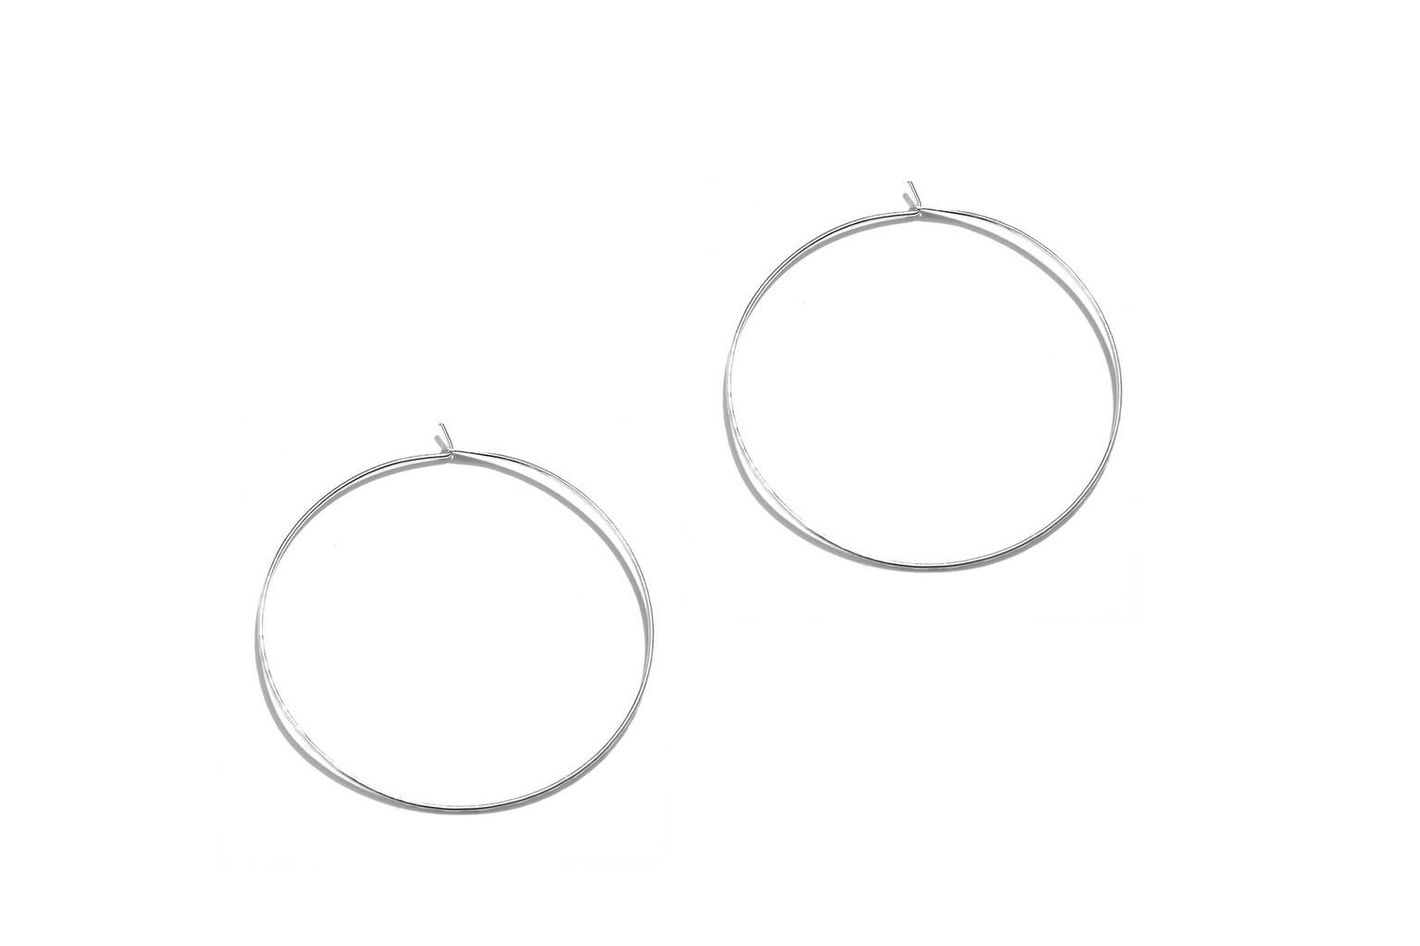 Phyllis + Rosie Hammered Hoop Earrings